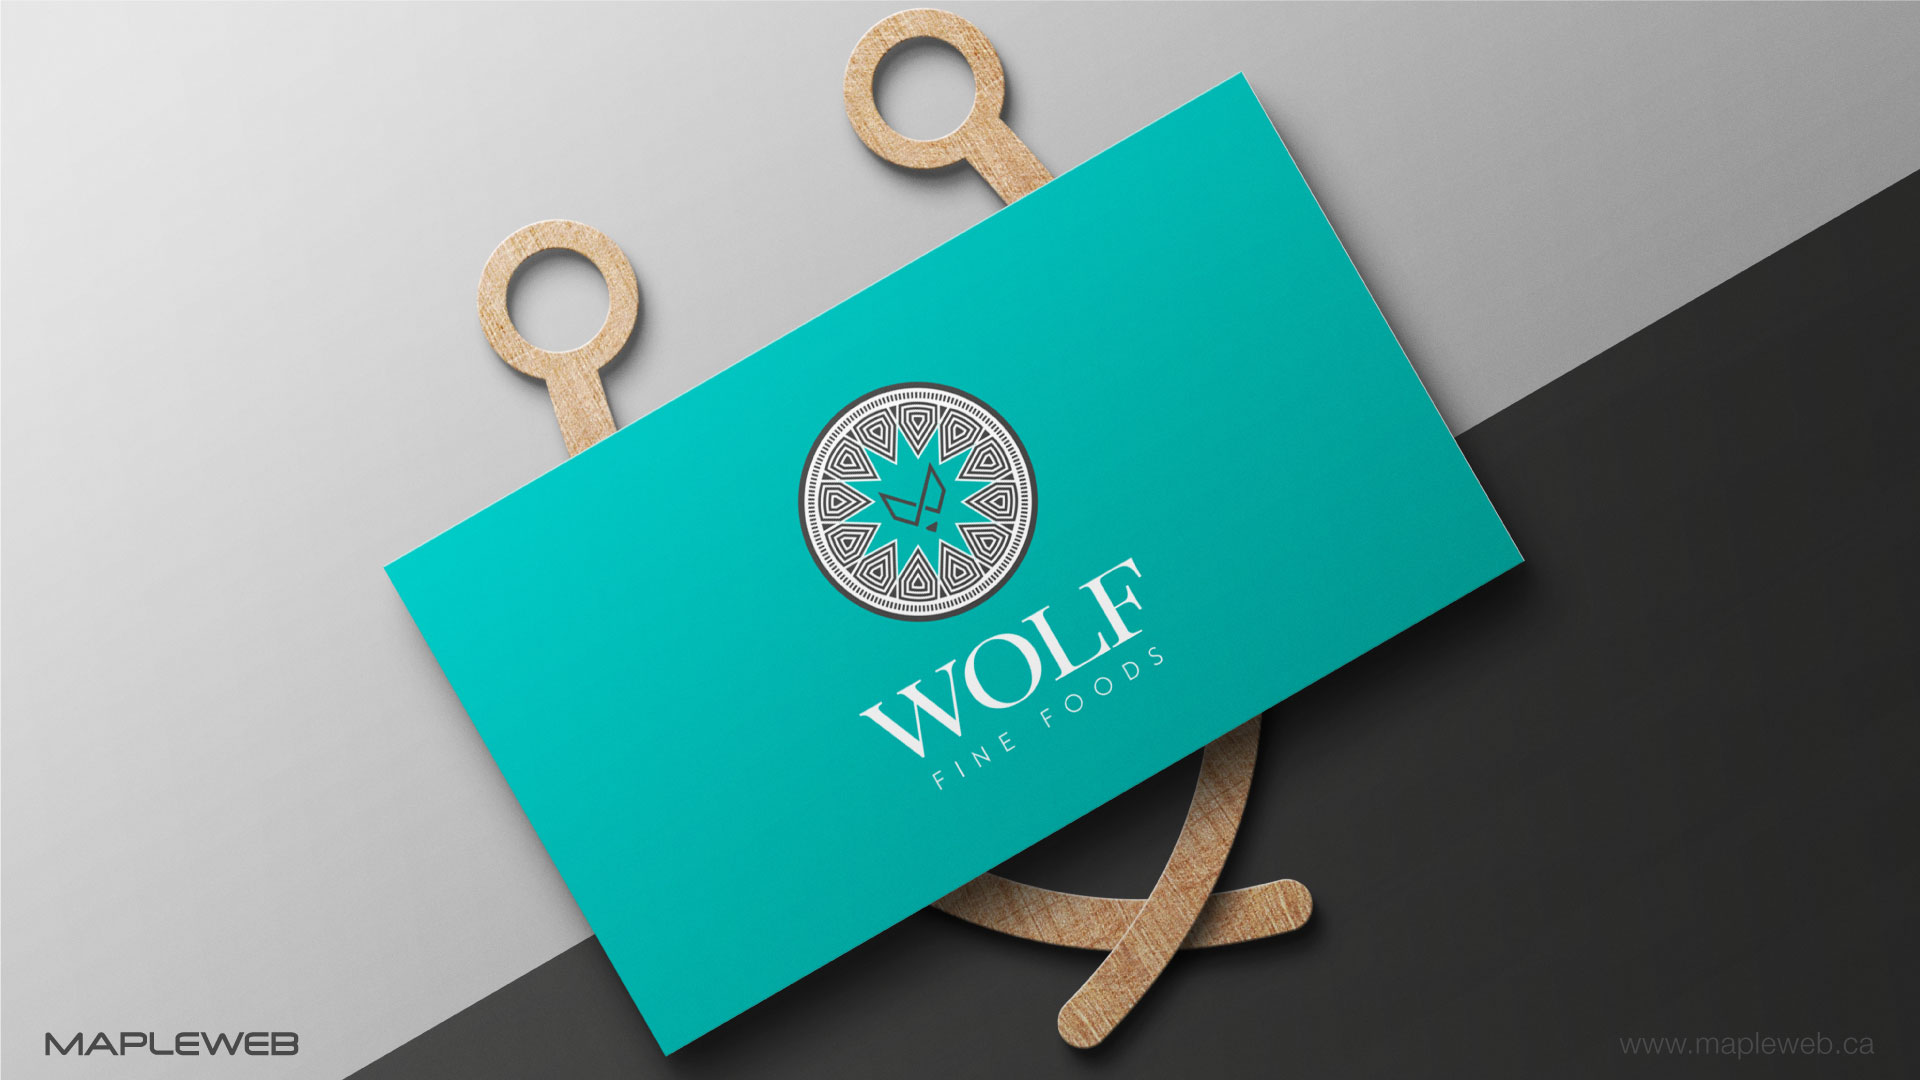 wolf-fine-foods-brand-logo-design-by-mapleweb-vancouver-canada-business-card-mock